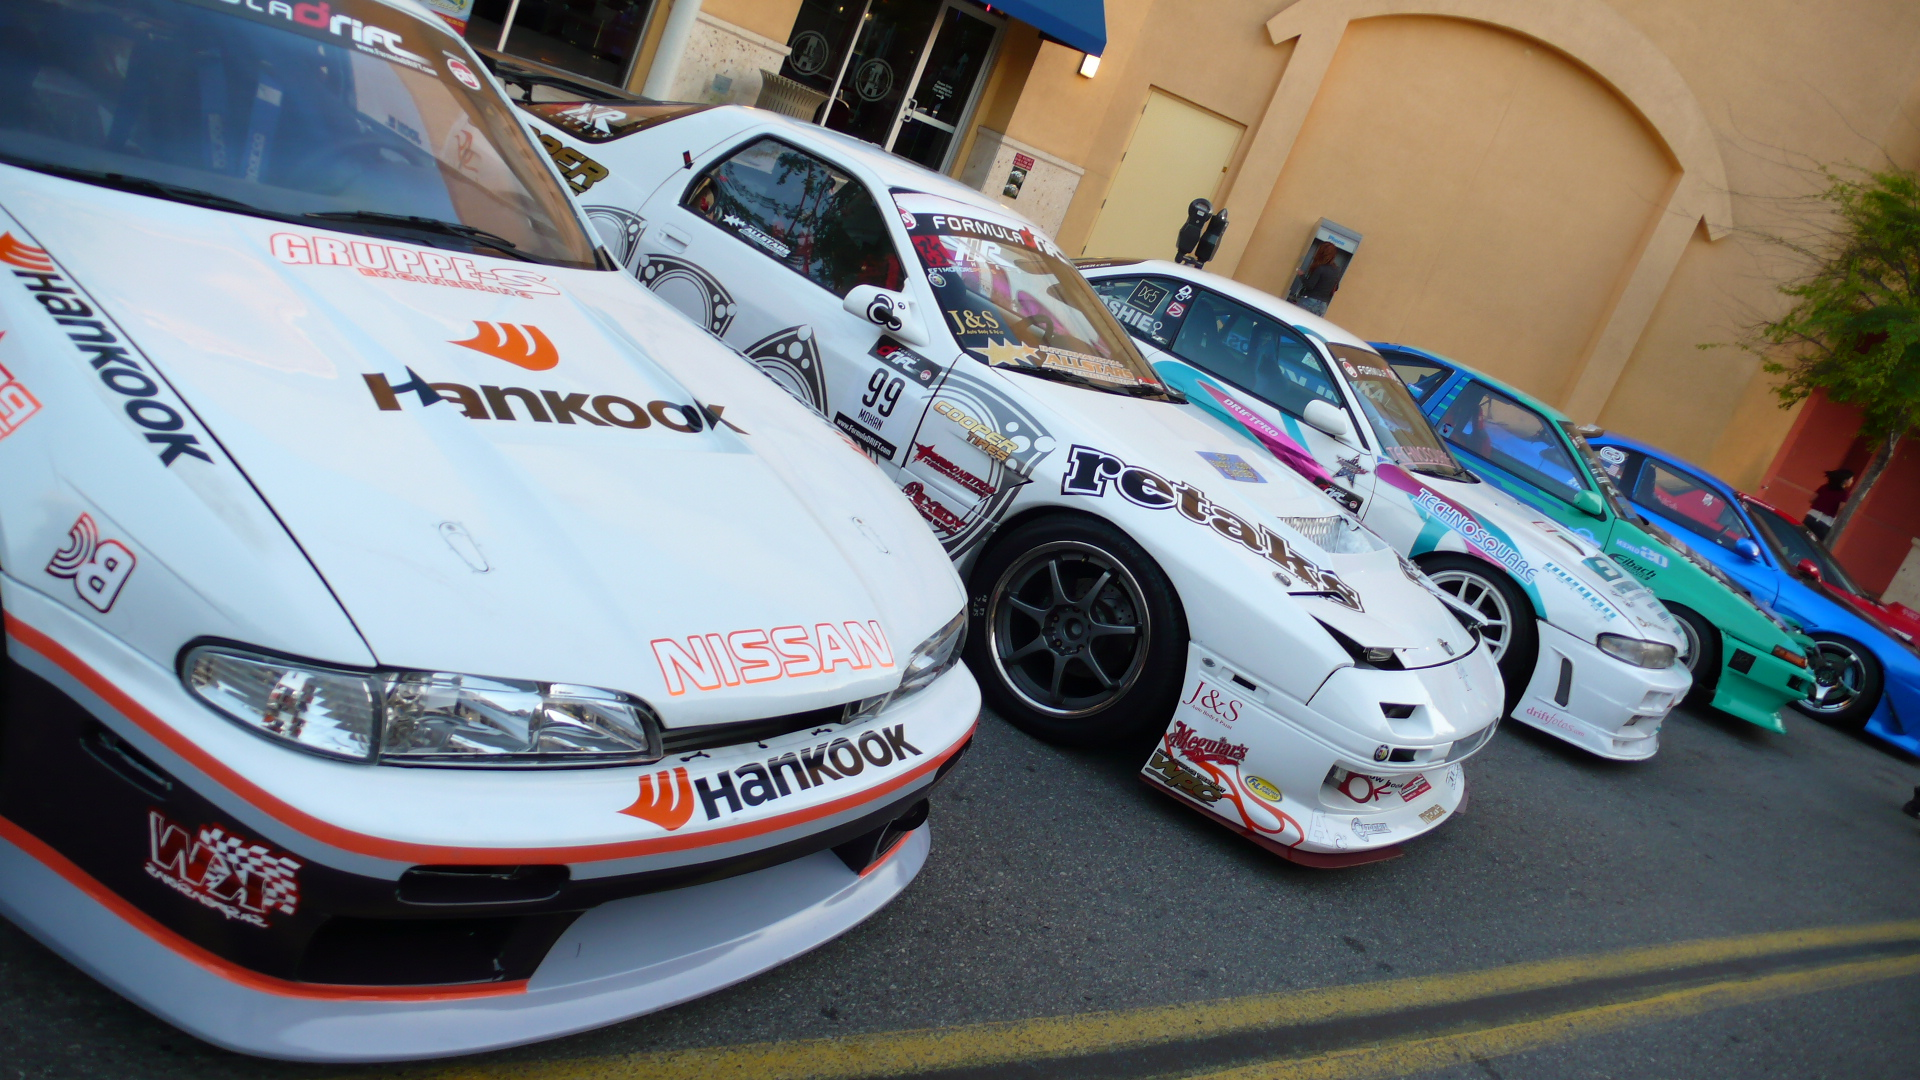 FD cars on display